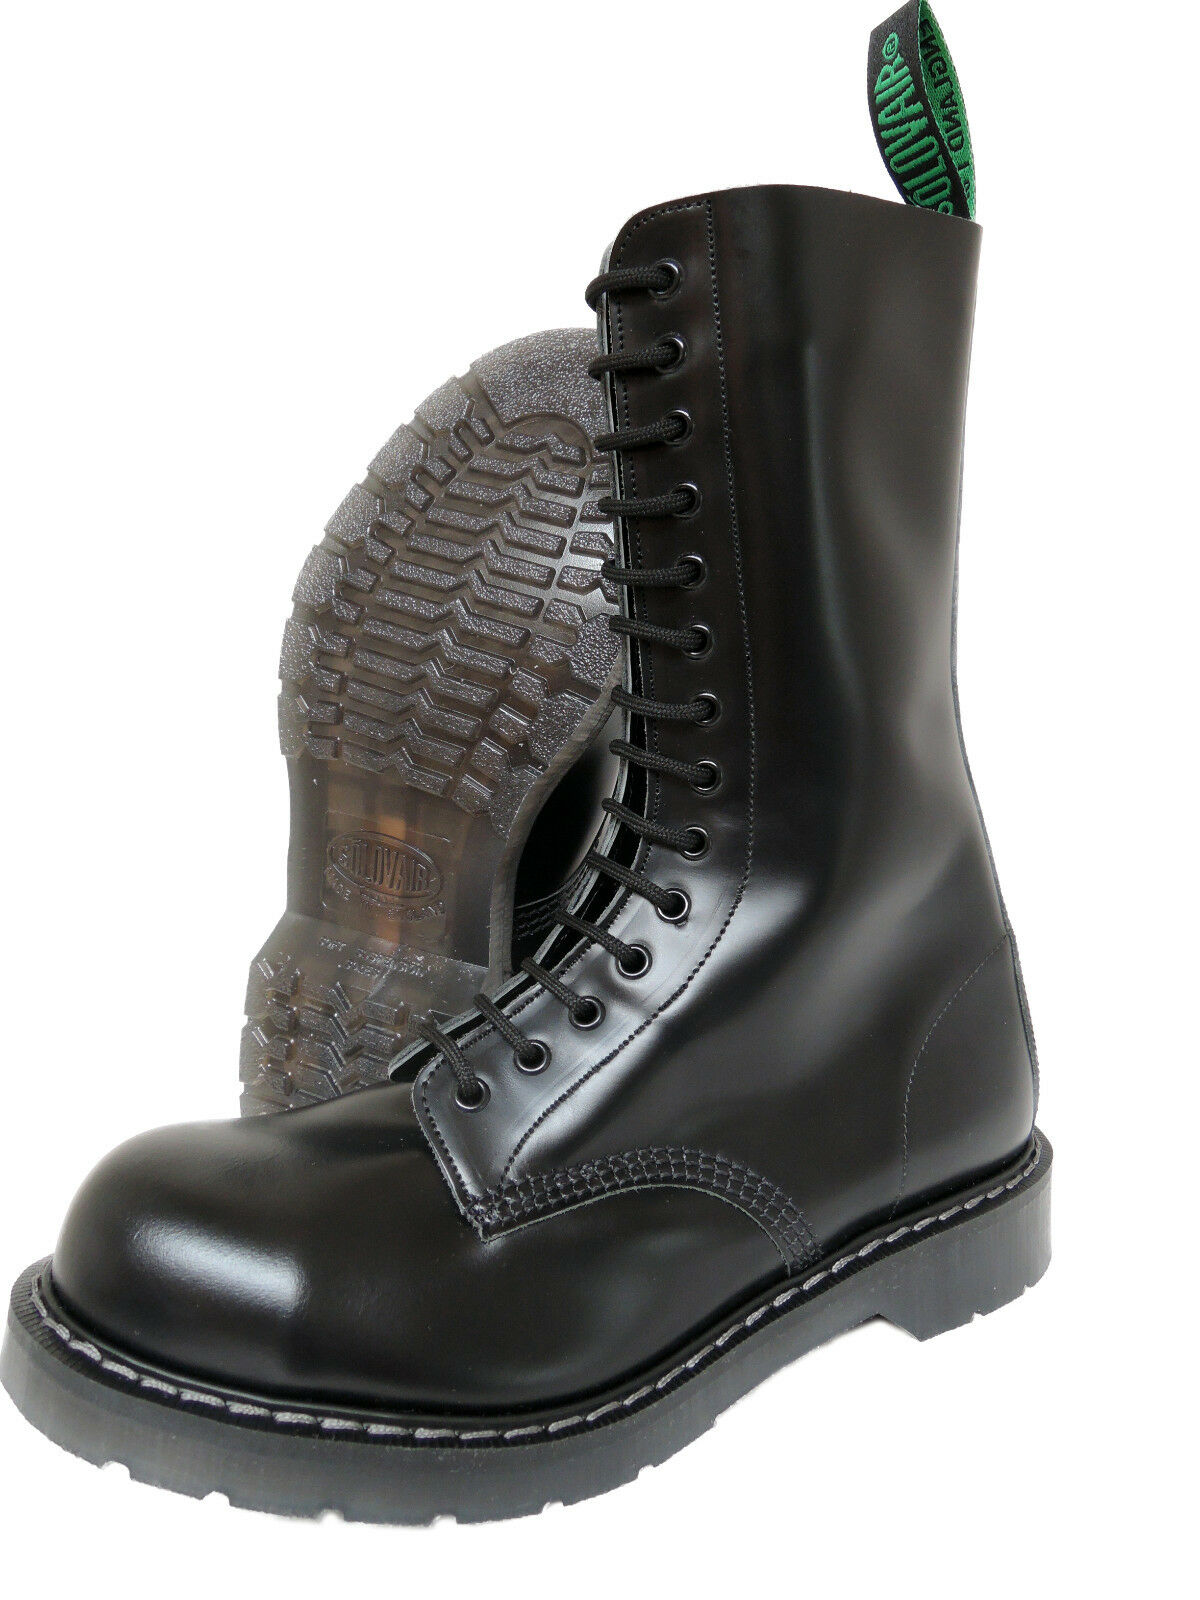 Solovair NPS Hand Made Toe in England Black Steel Toe Made Boots Stiefel Schwarz 07db95